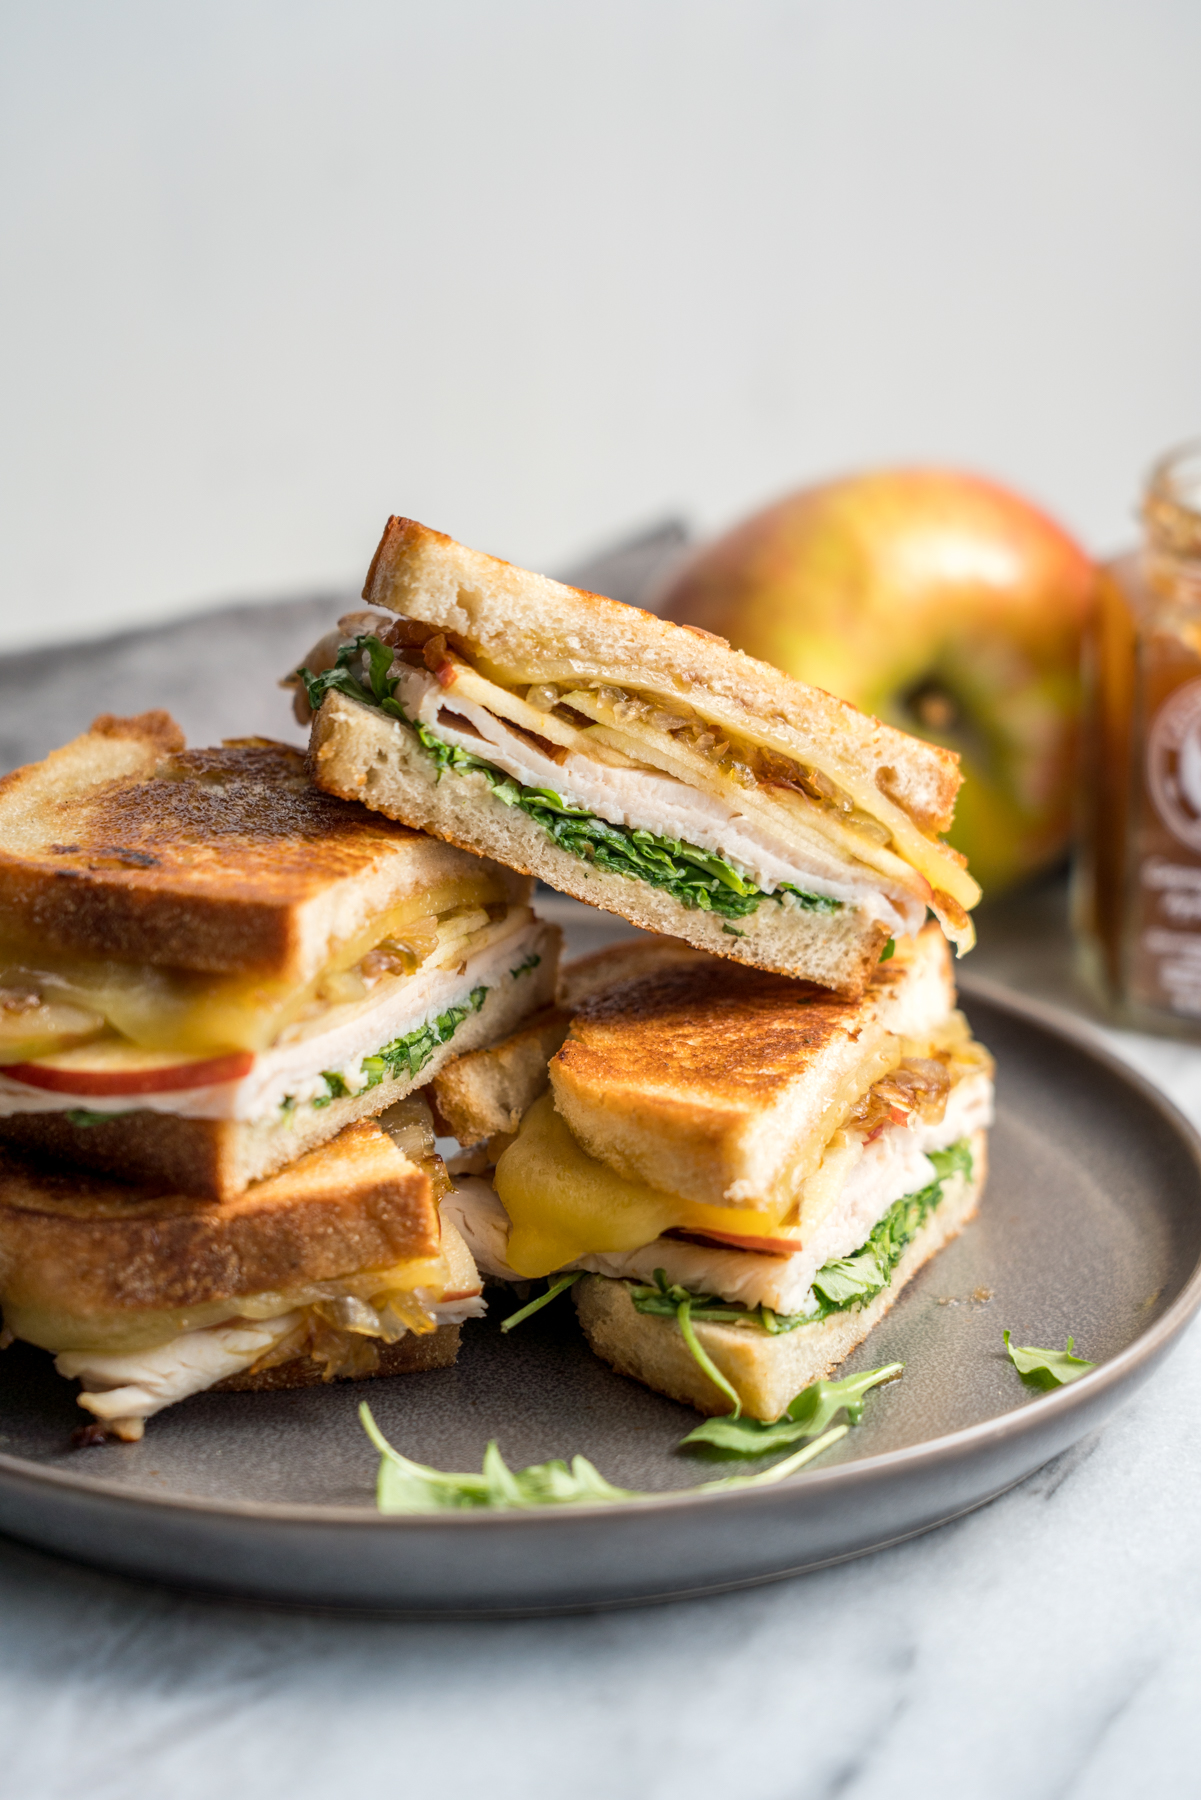 Apple and Turkey Grilled Cheese with Caramelized Shallots, by Brunchographers